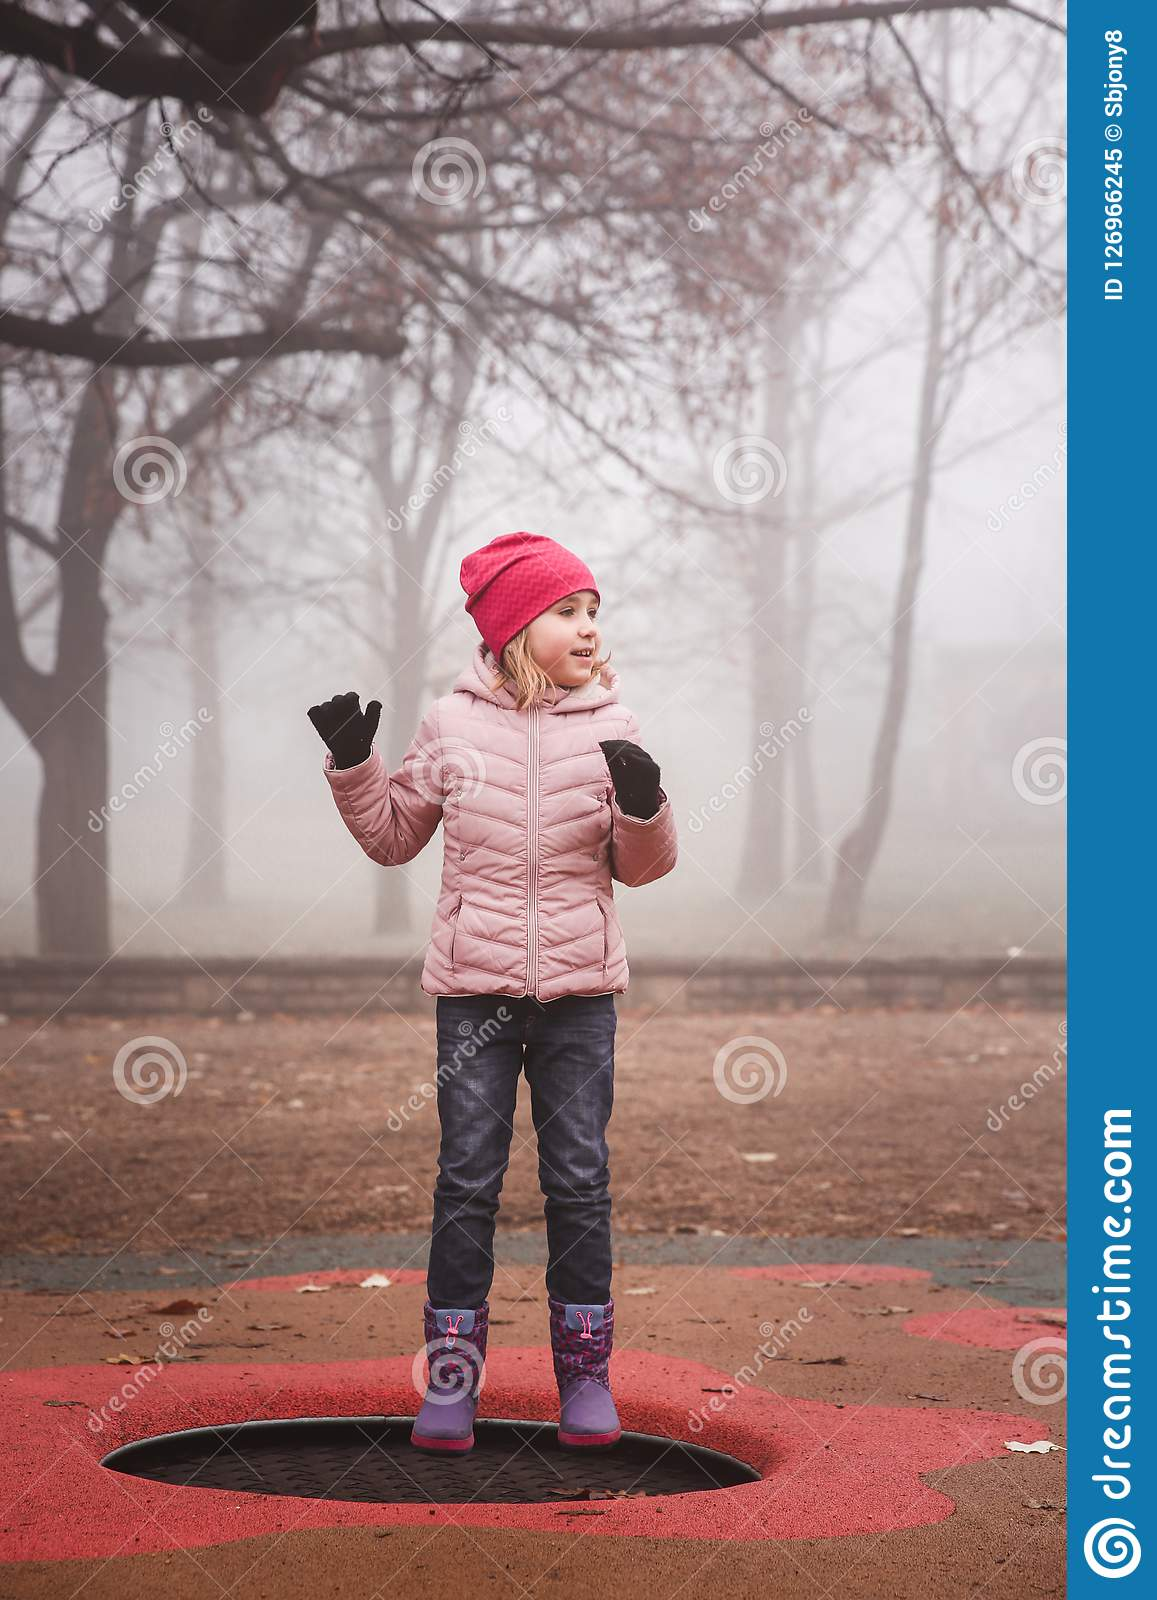 Happy girl in a pink jacket jumping on the trampoline outdoors in park. Autumn, misty forest.